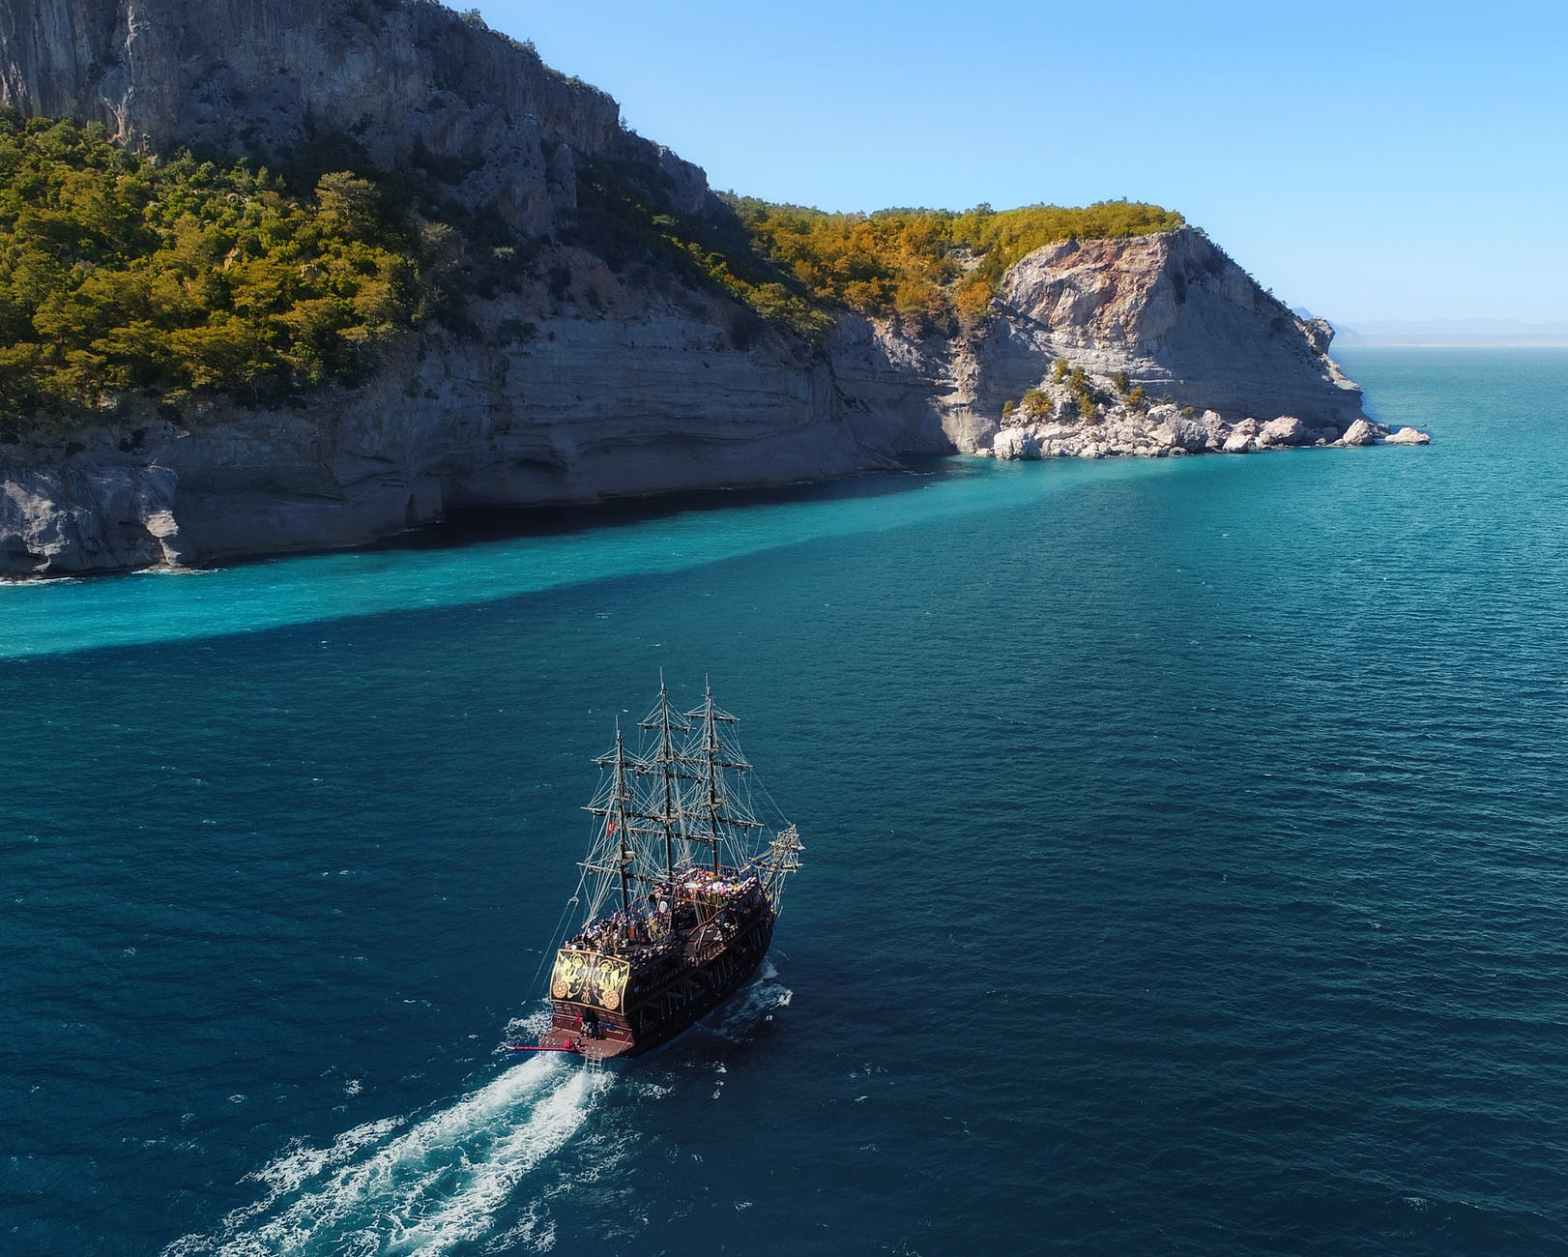 old ship floating in sea near mountainous island with plants